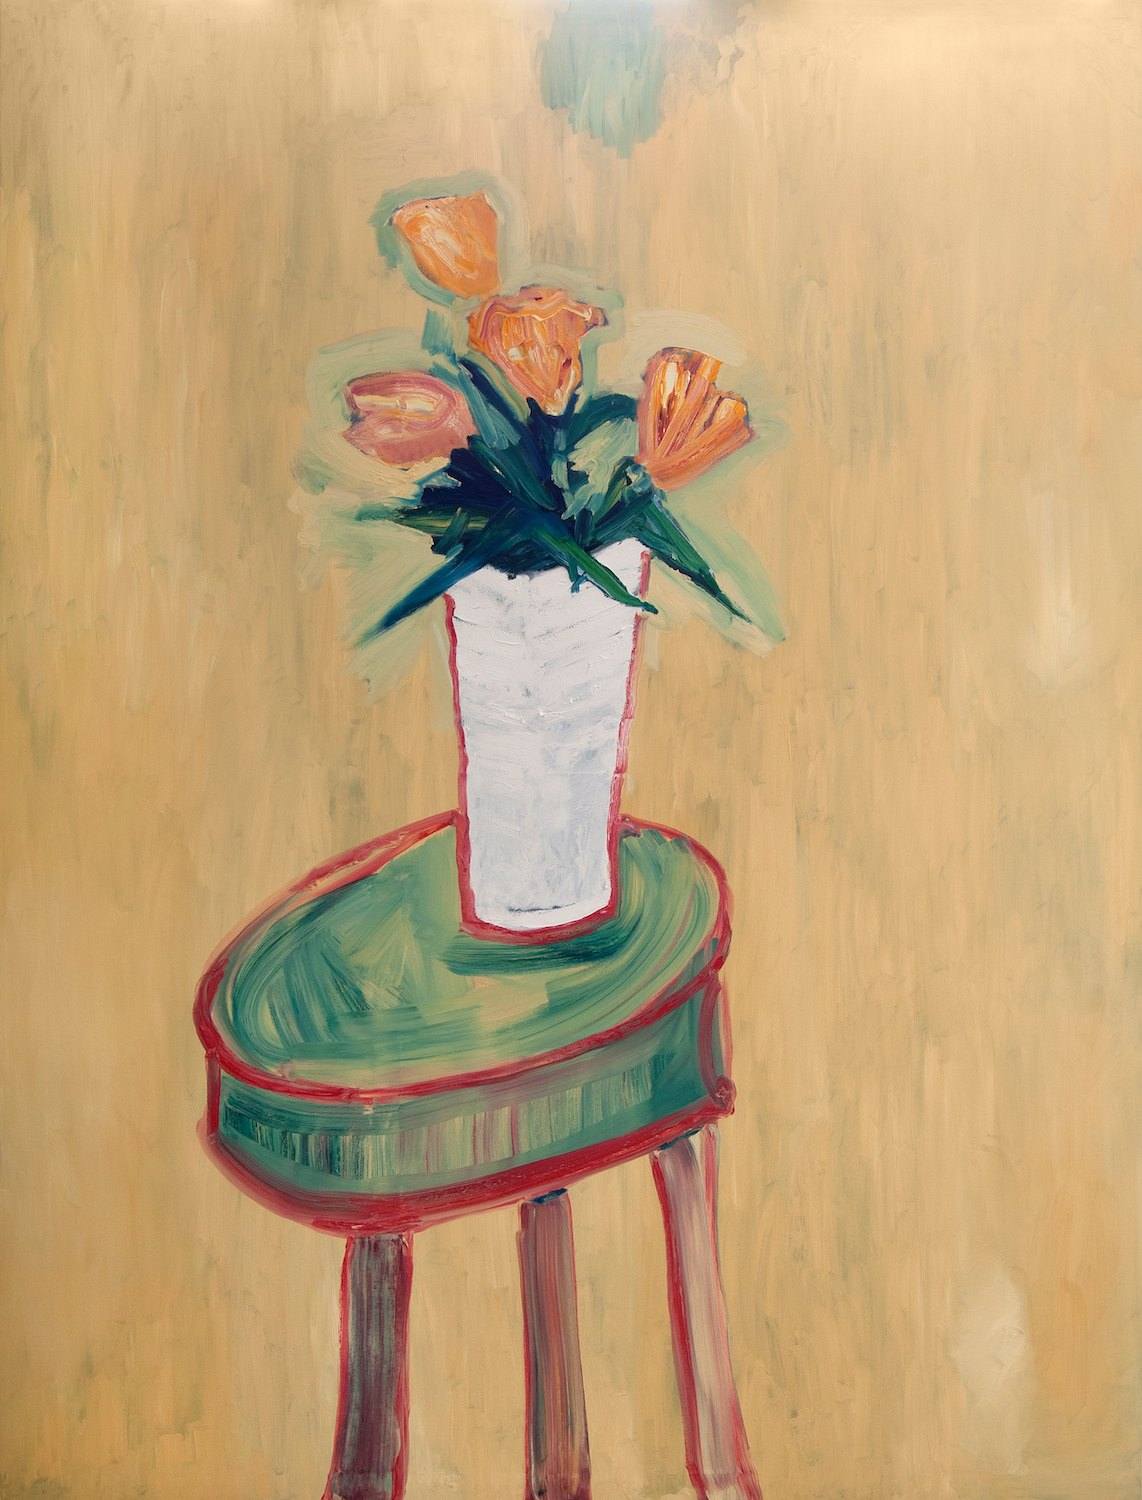 Large Tulips in White Vase on Stool